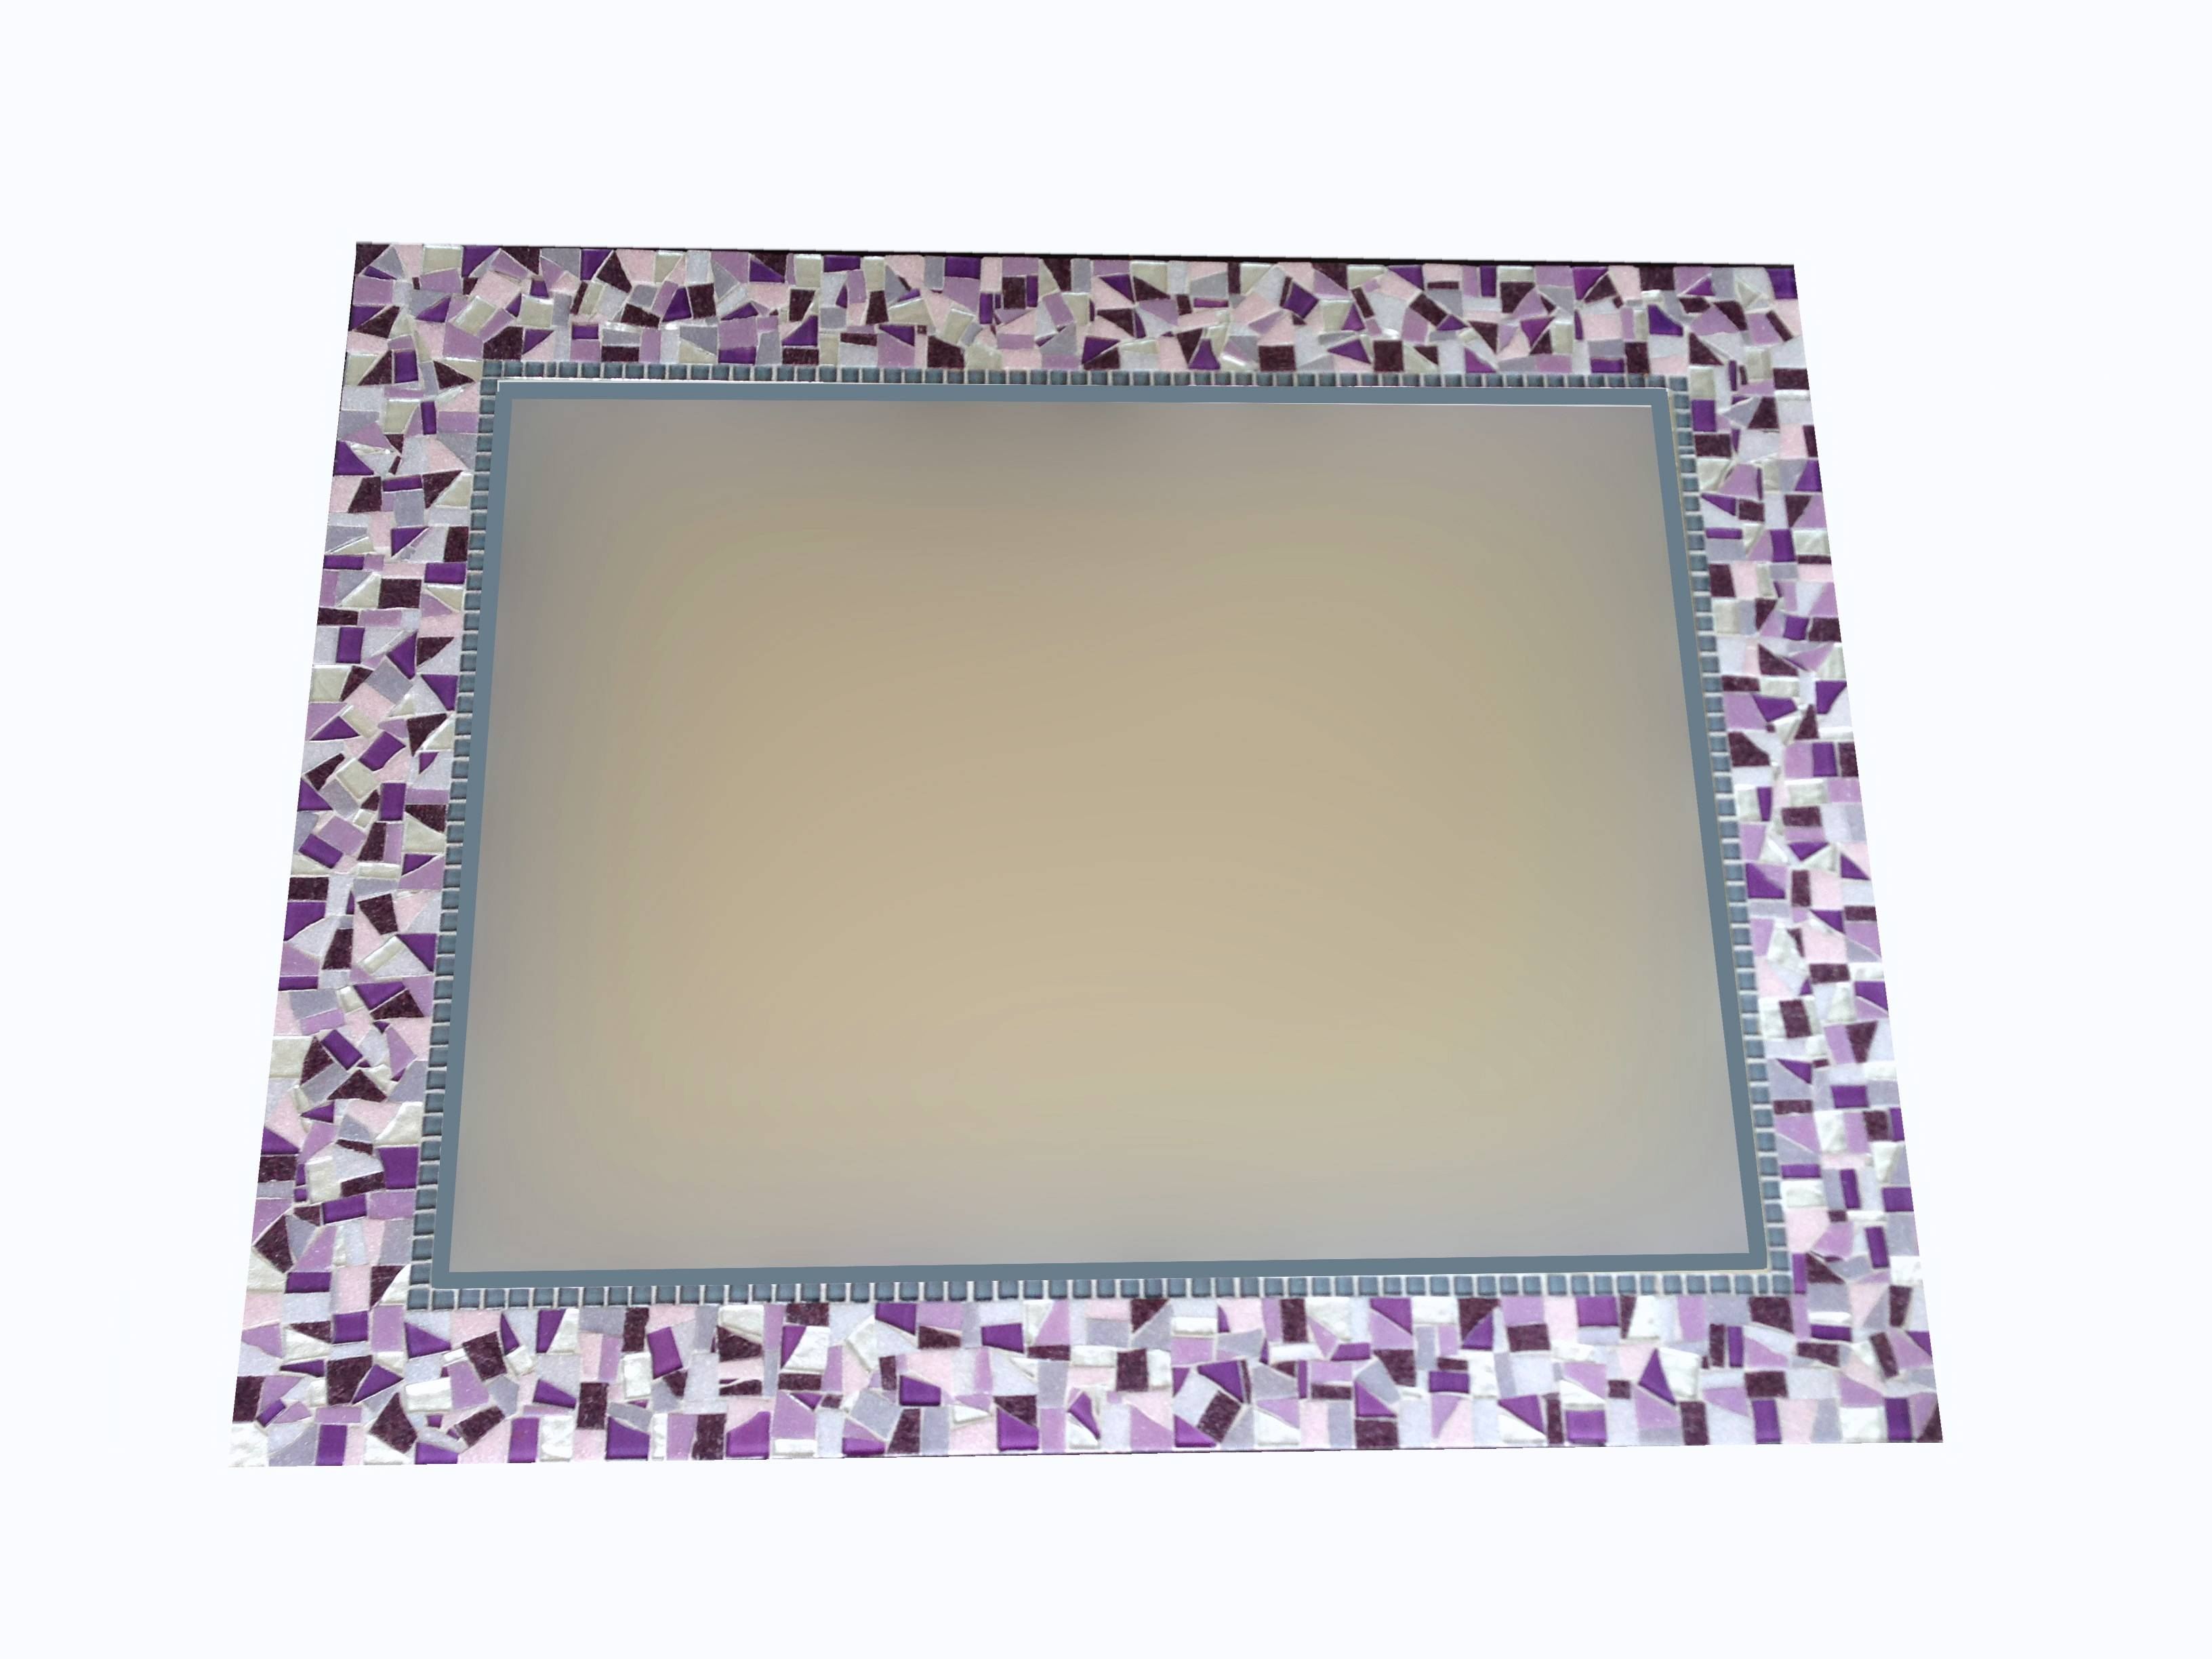 Purple And Silver Mosaic Wall Mirror - : within Mosaic Wall Mirrors (Image 20 of 25)